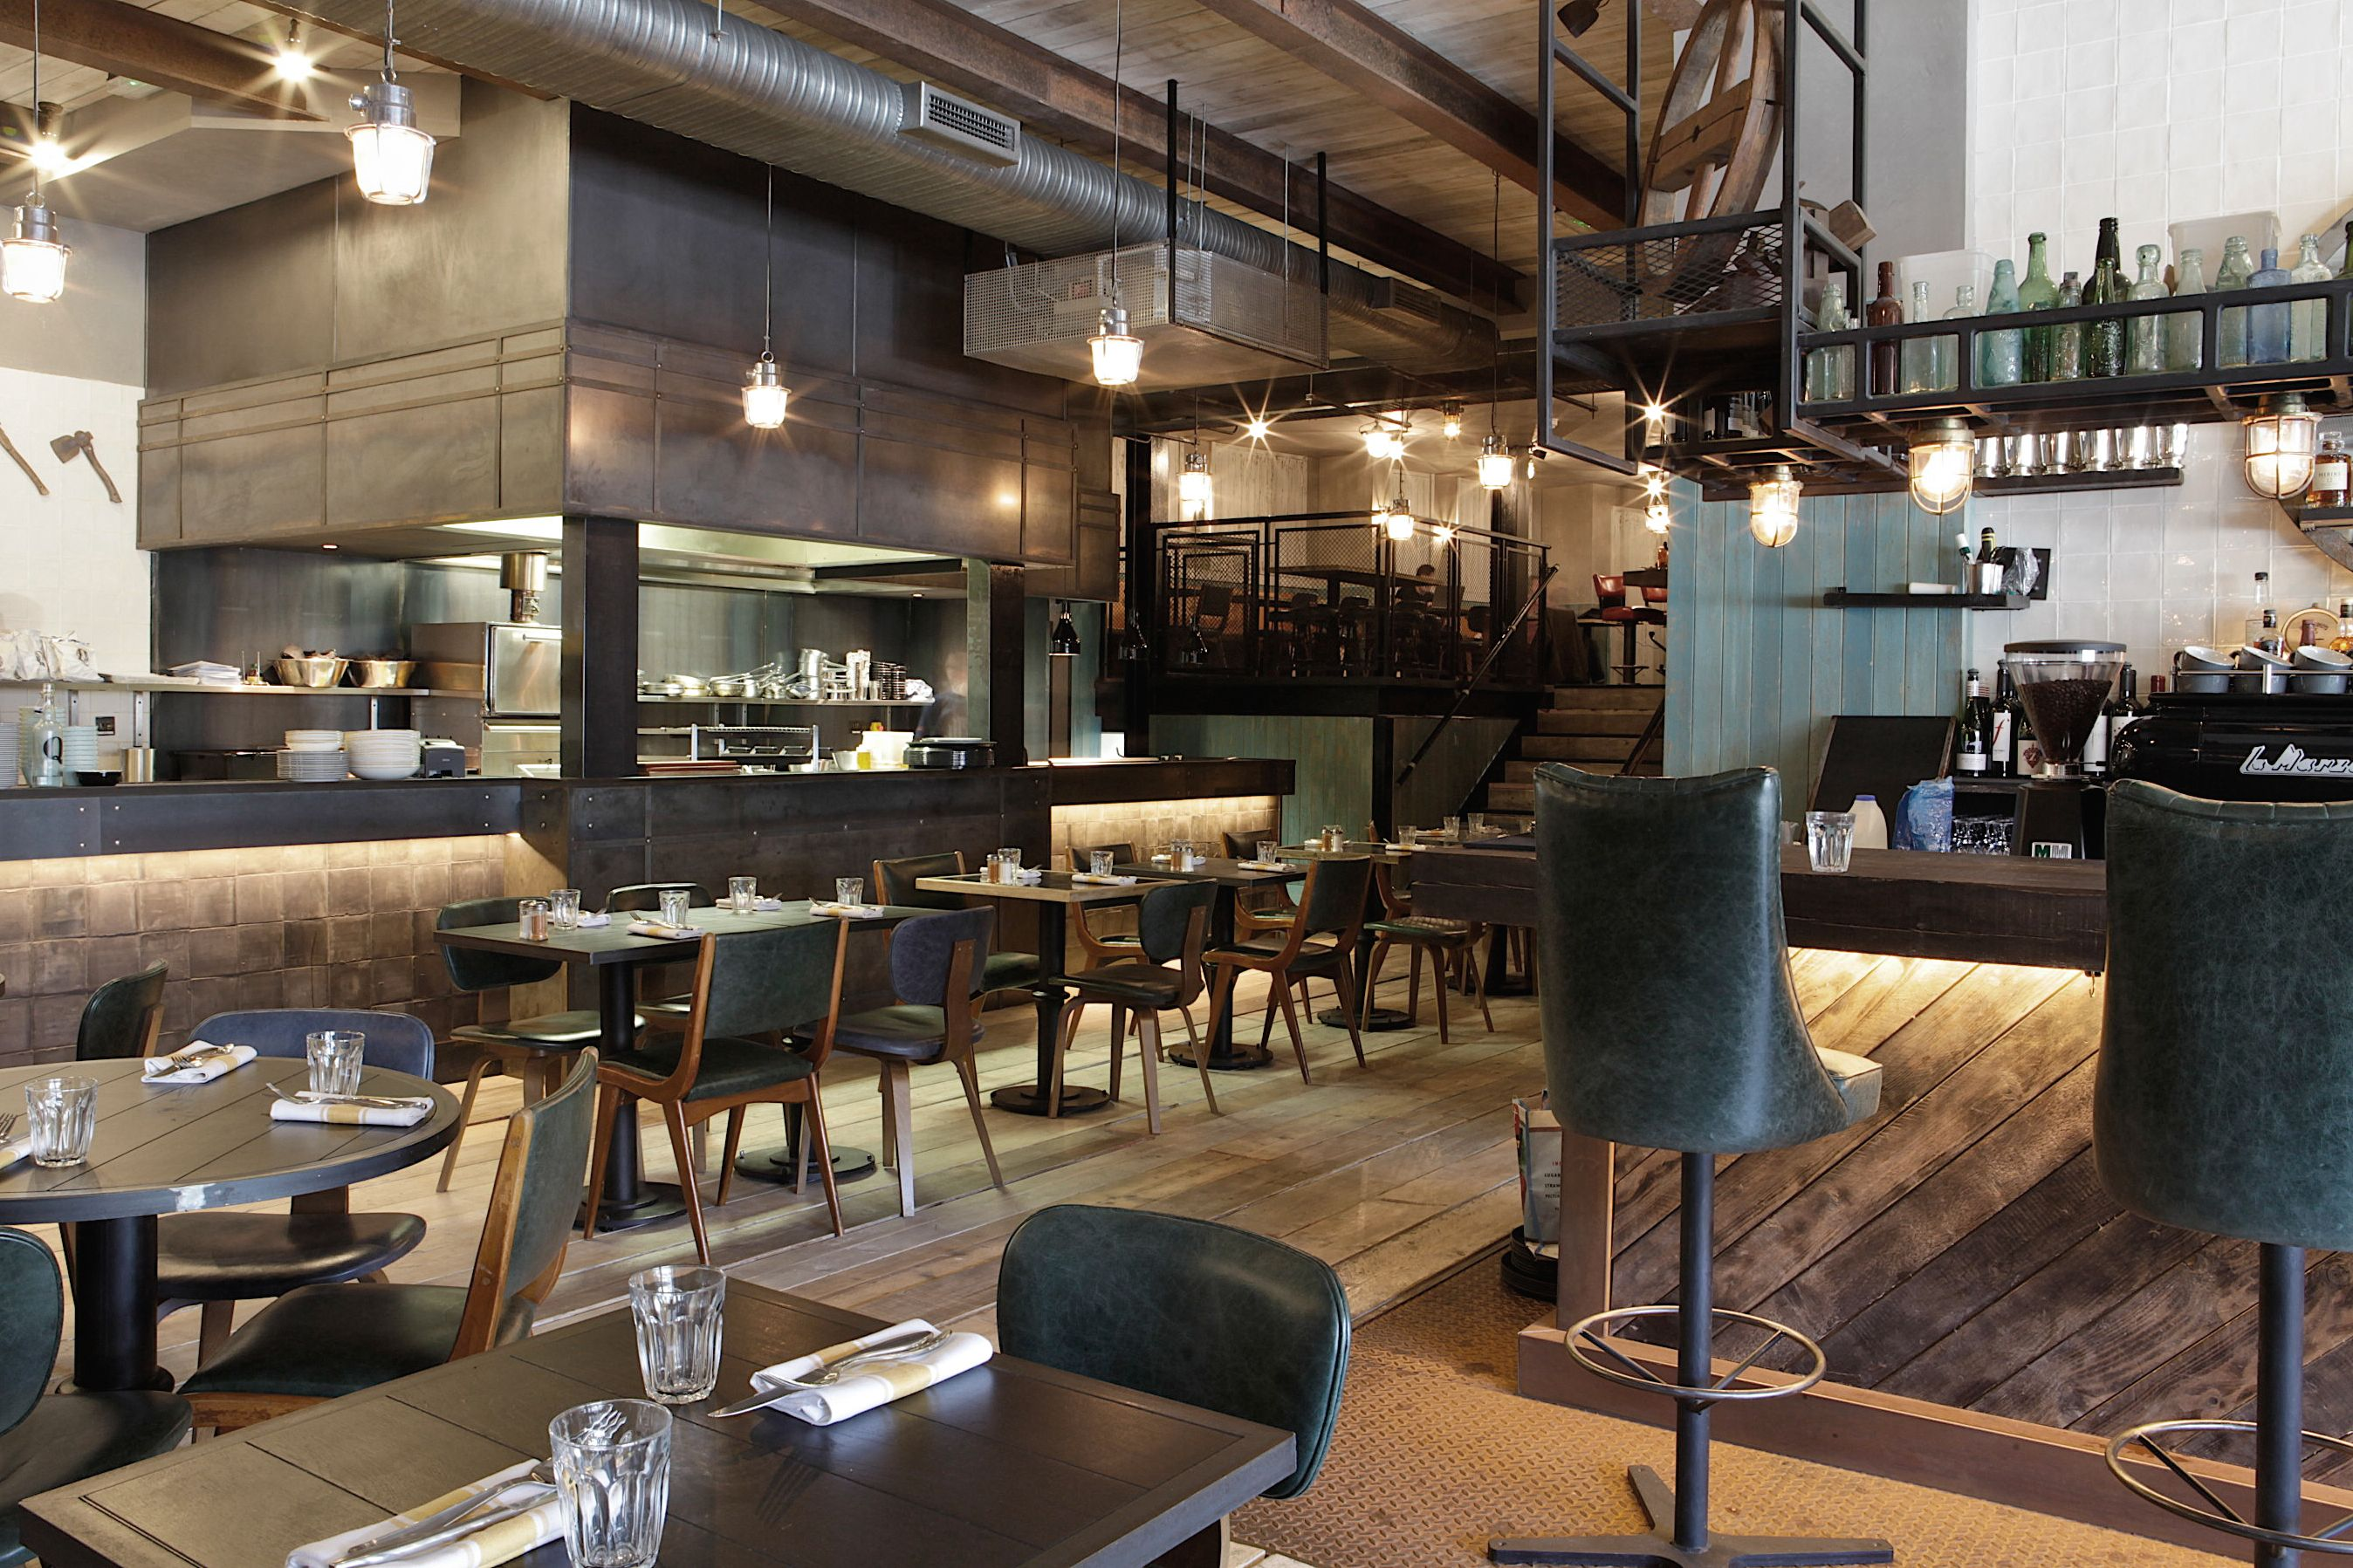 EXPOSED DUCTING, SHOW KITCHEN AT Q GRILL BY ALEXANDER WATERWORTH INTERIORS